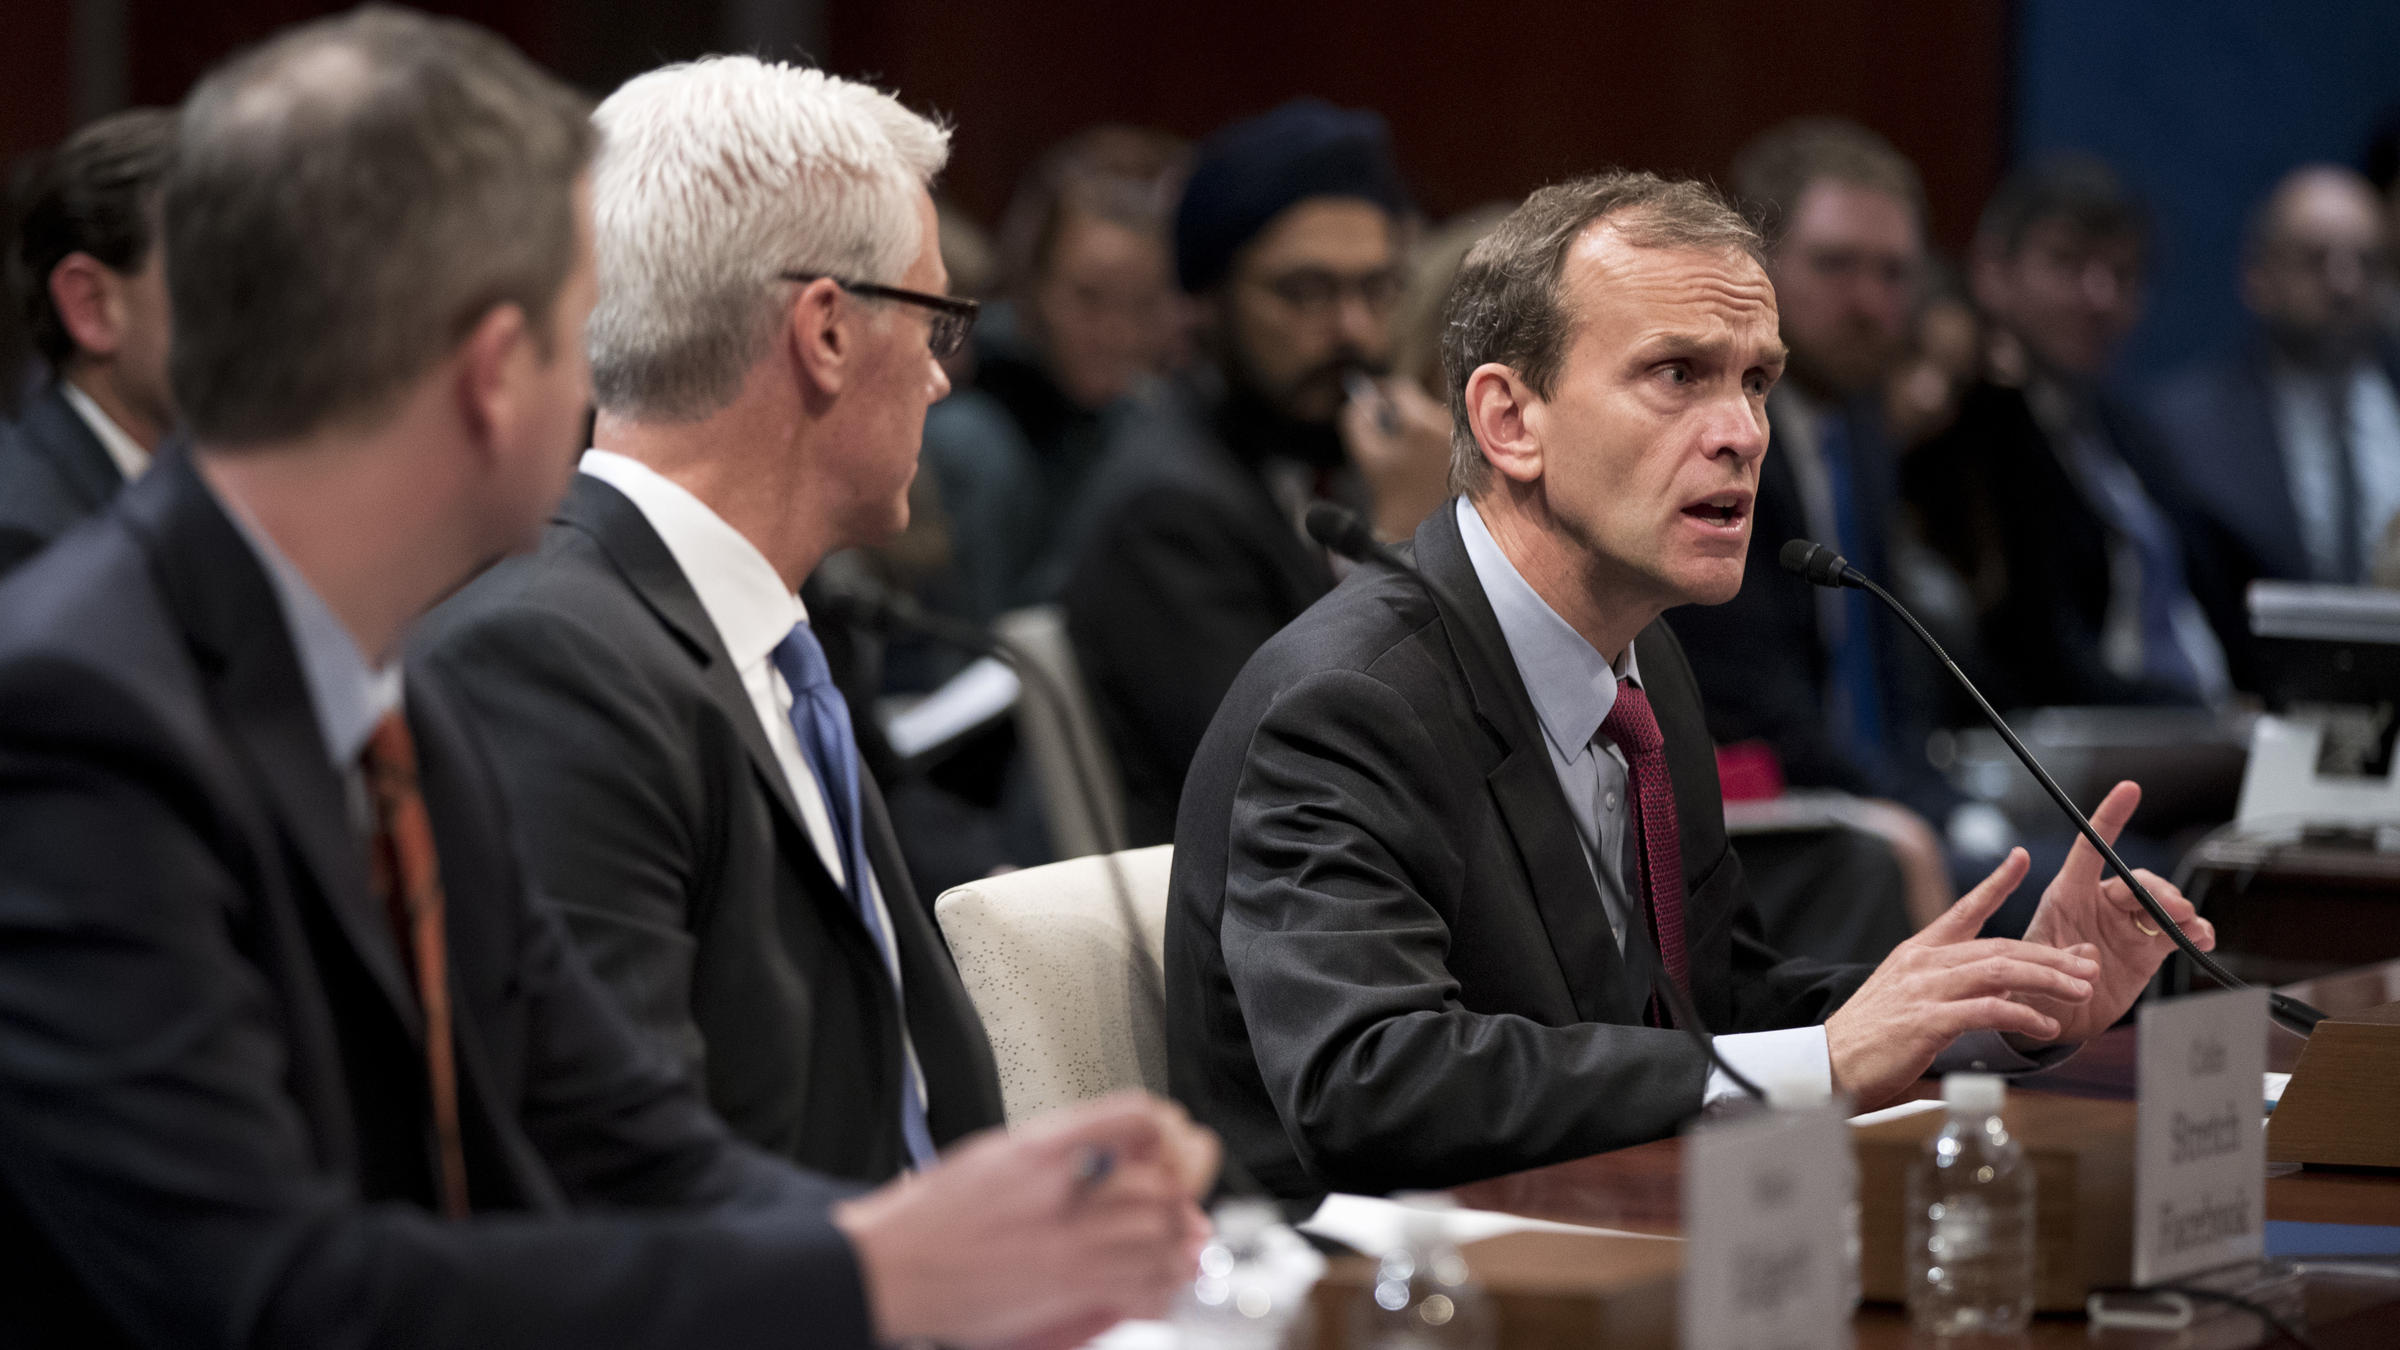 Tough Questions, Hours Of Hearings But No Silver Bullet On Russian